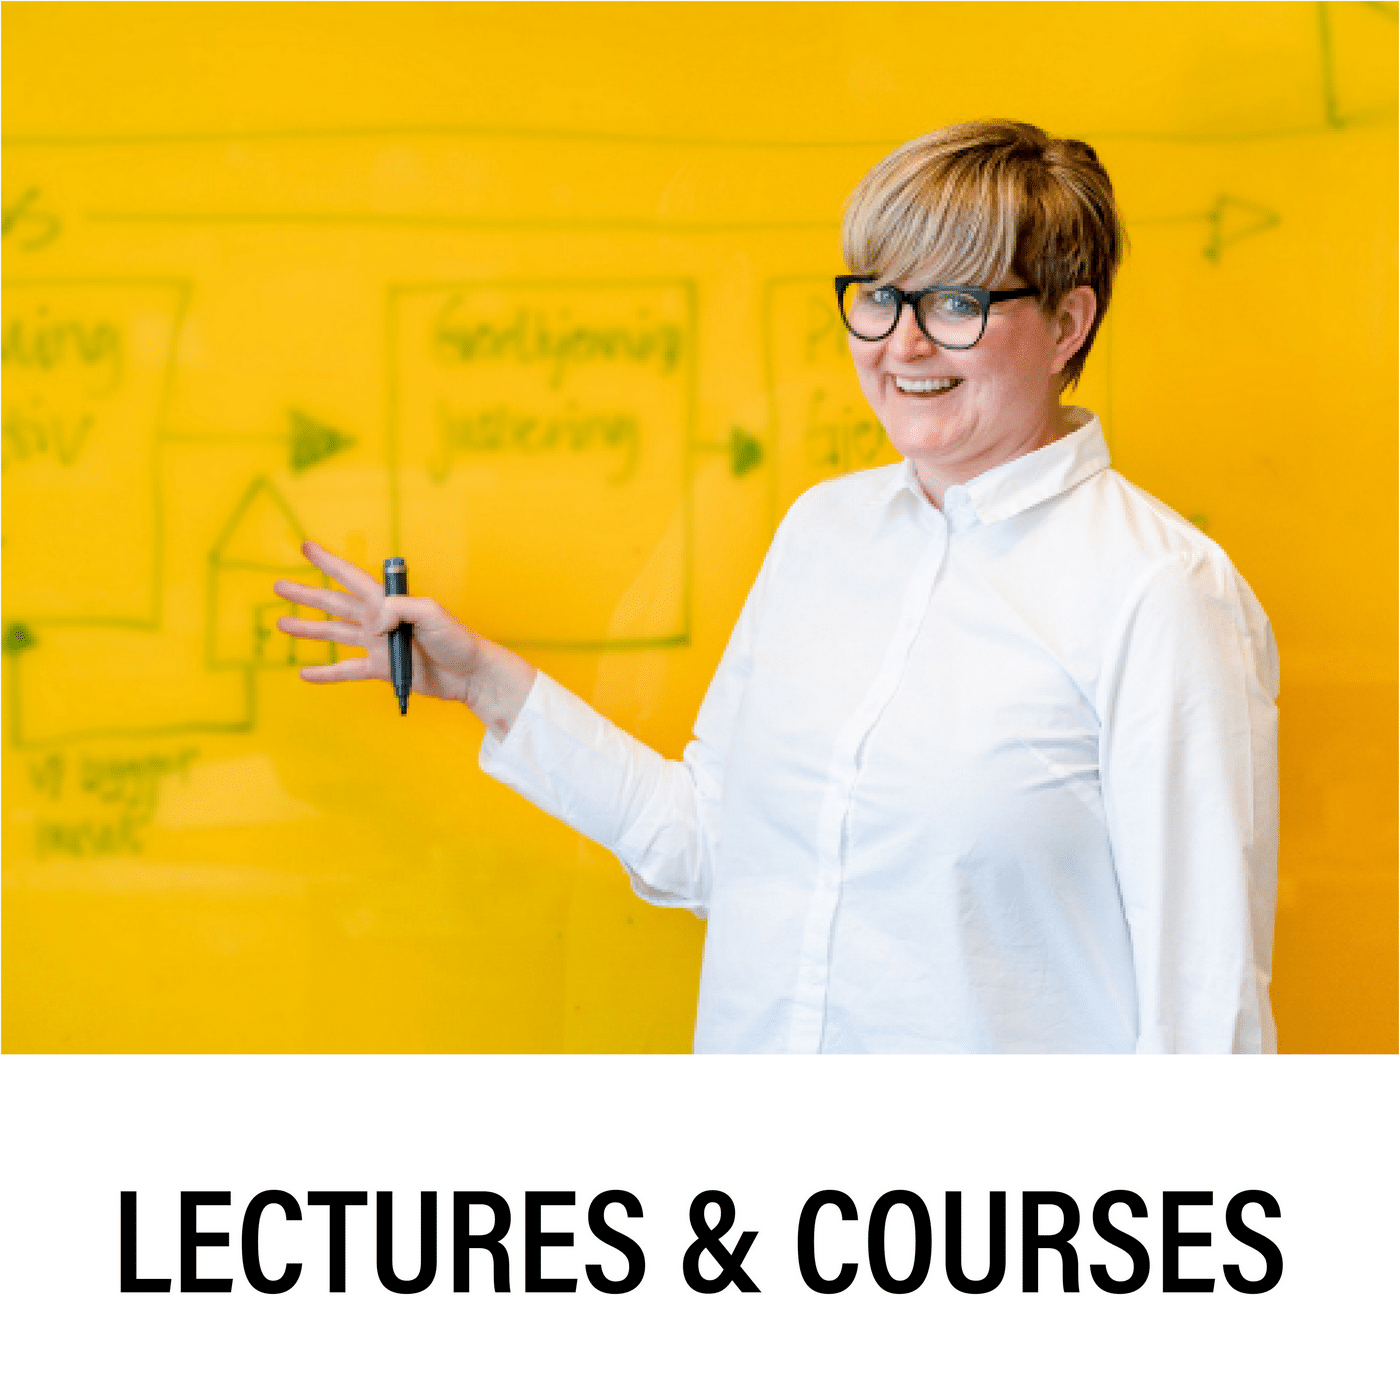 Lectures and courses